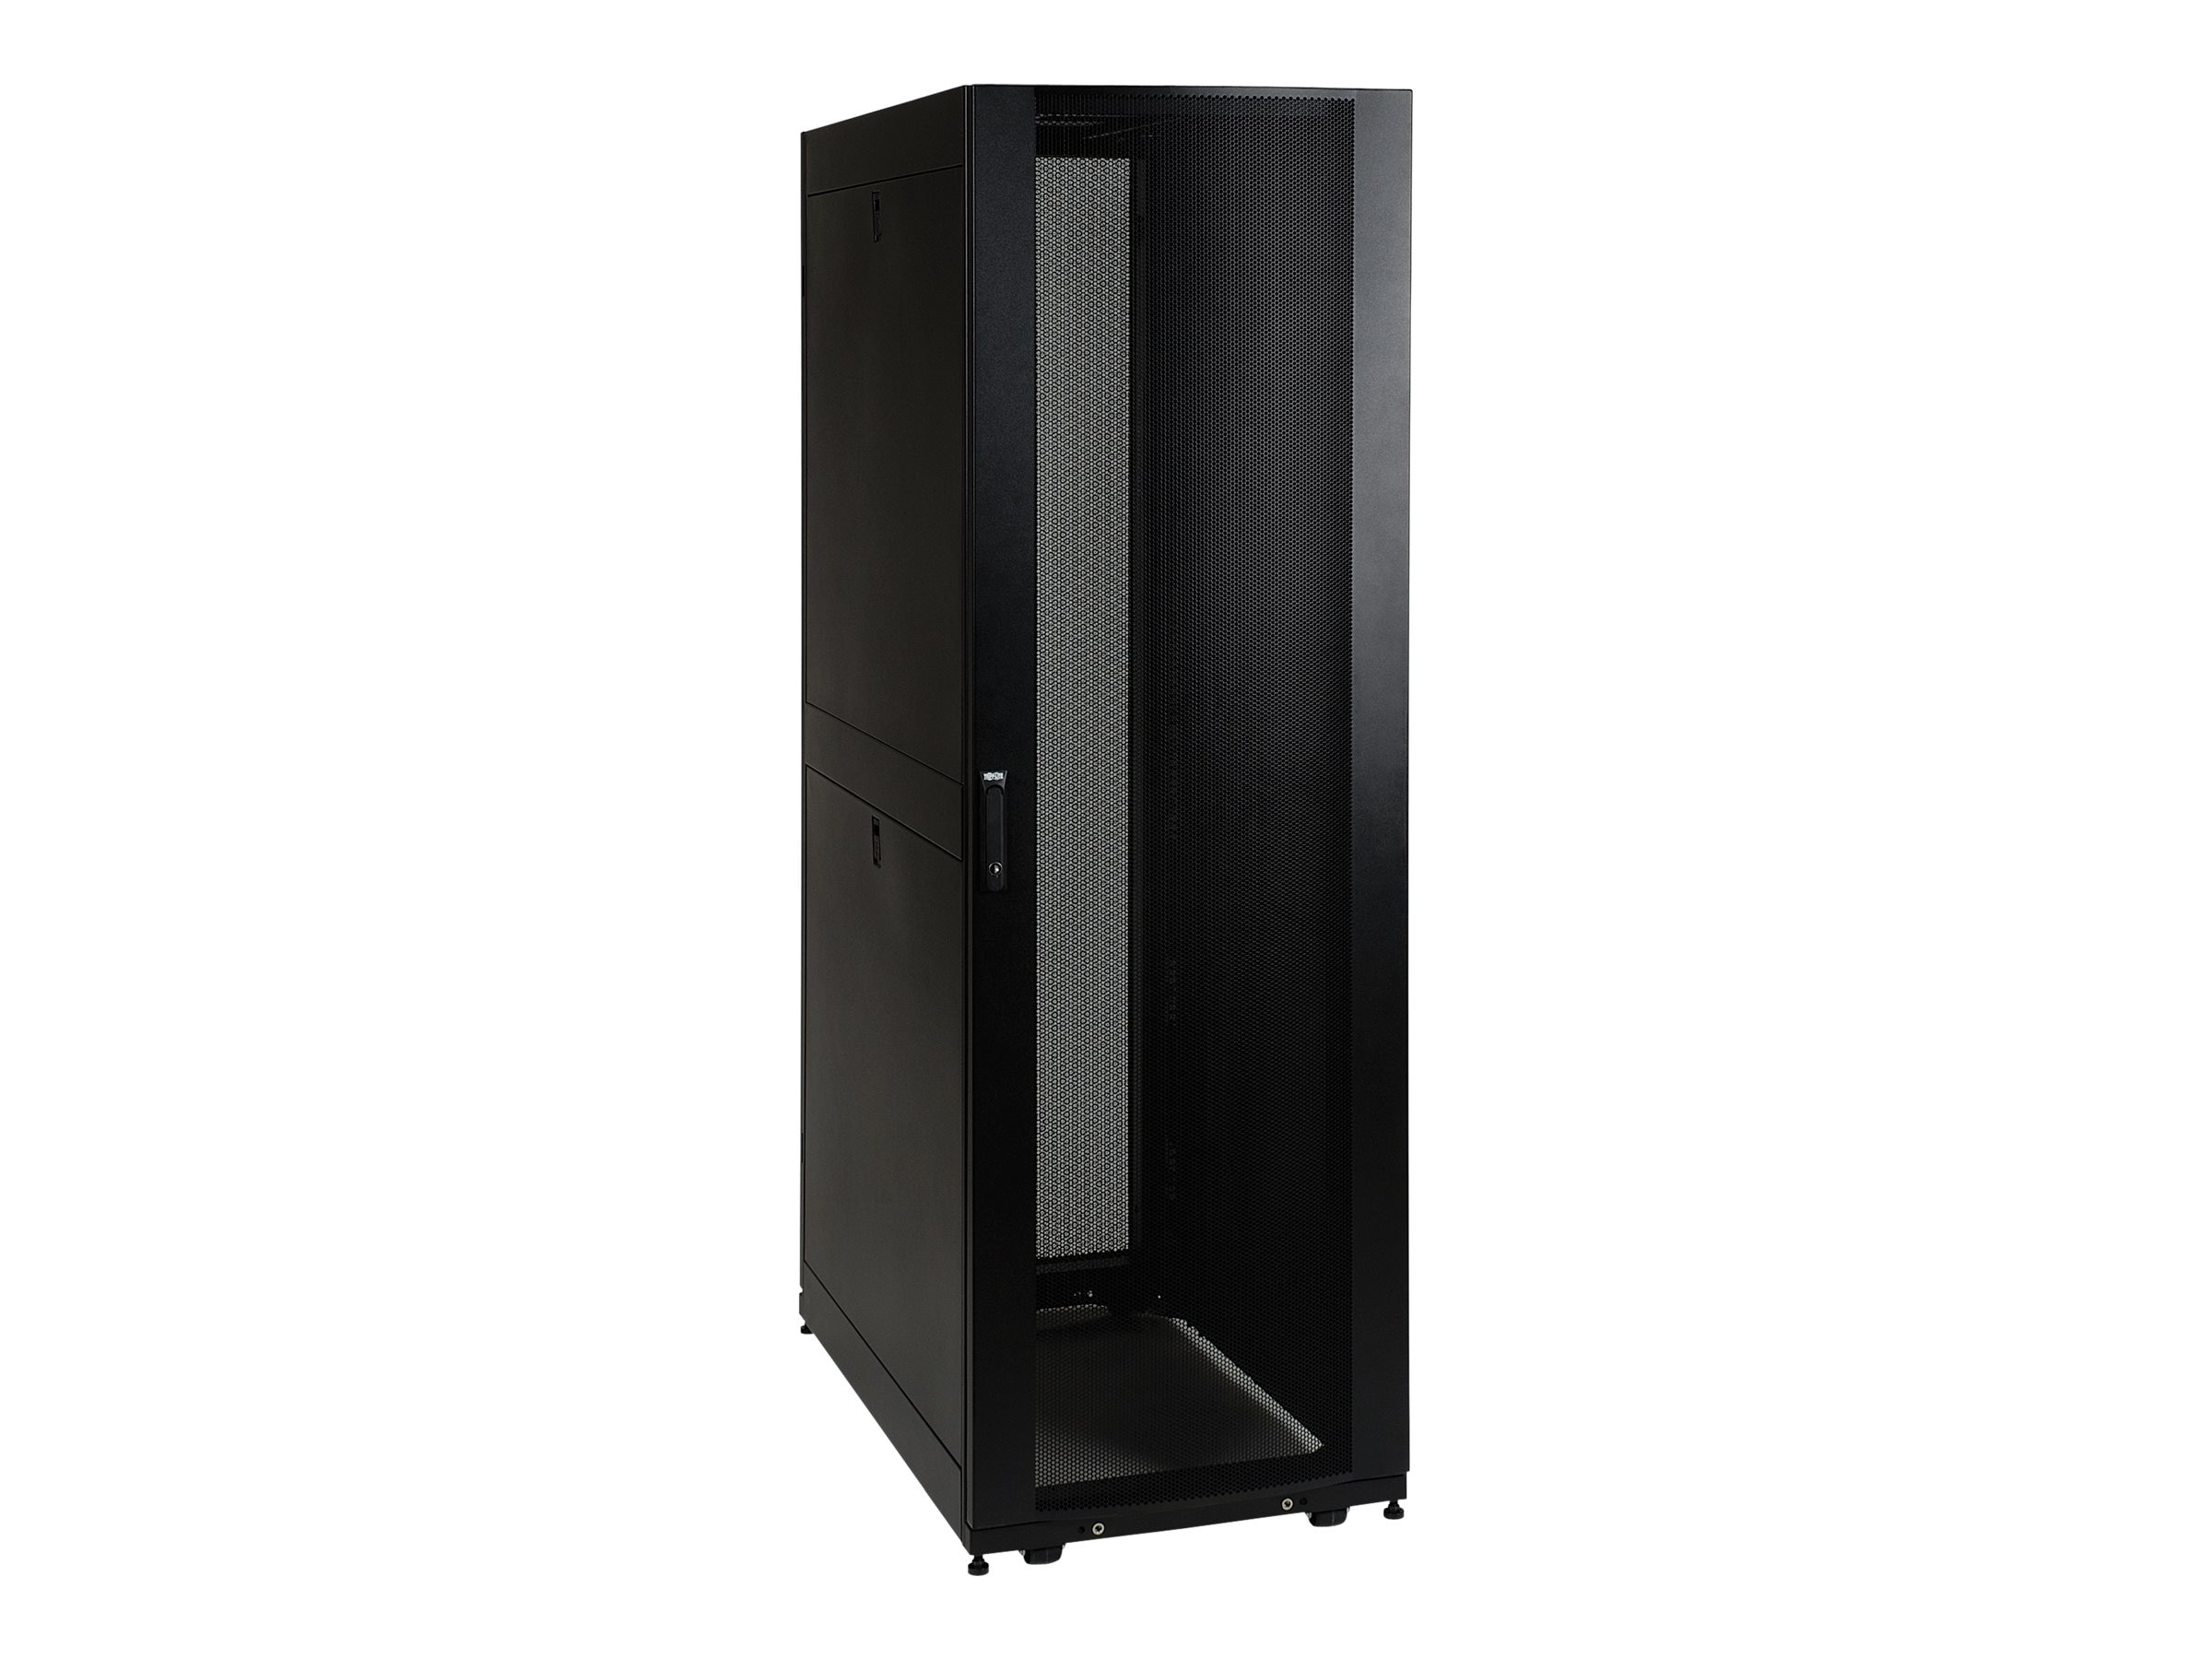 Tripp Lite SmartRack Premium Enclosure, Doors and Side Panels, 48U, Black, Instant Rebate - Save $125, SR48UB, 8845593, Racks & Cabinets